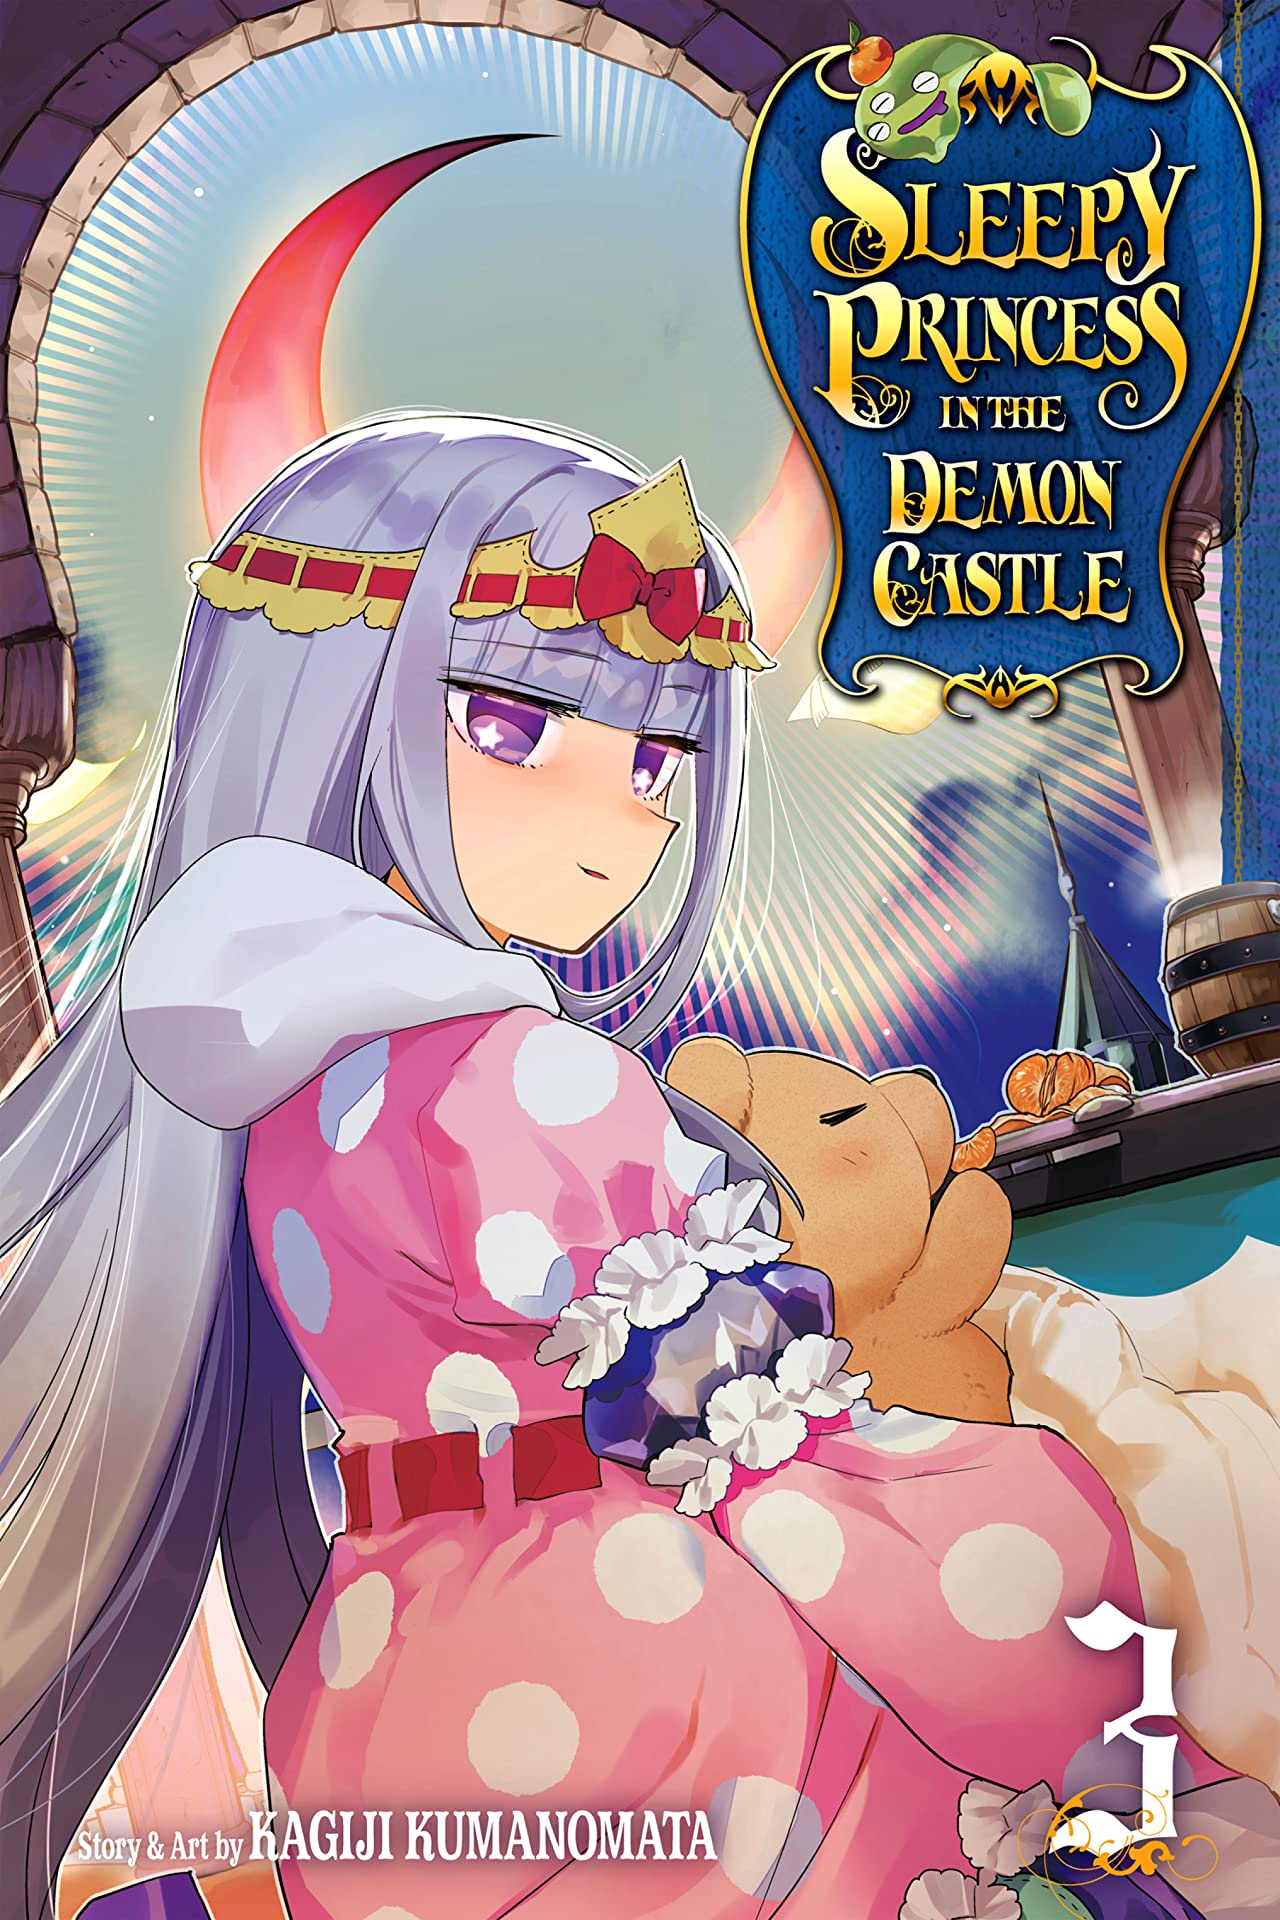 Sleepy Princess in the Demon Castle Vol. 3